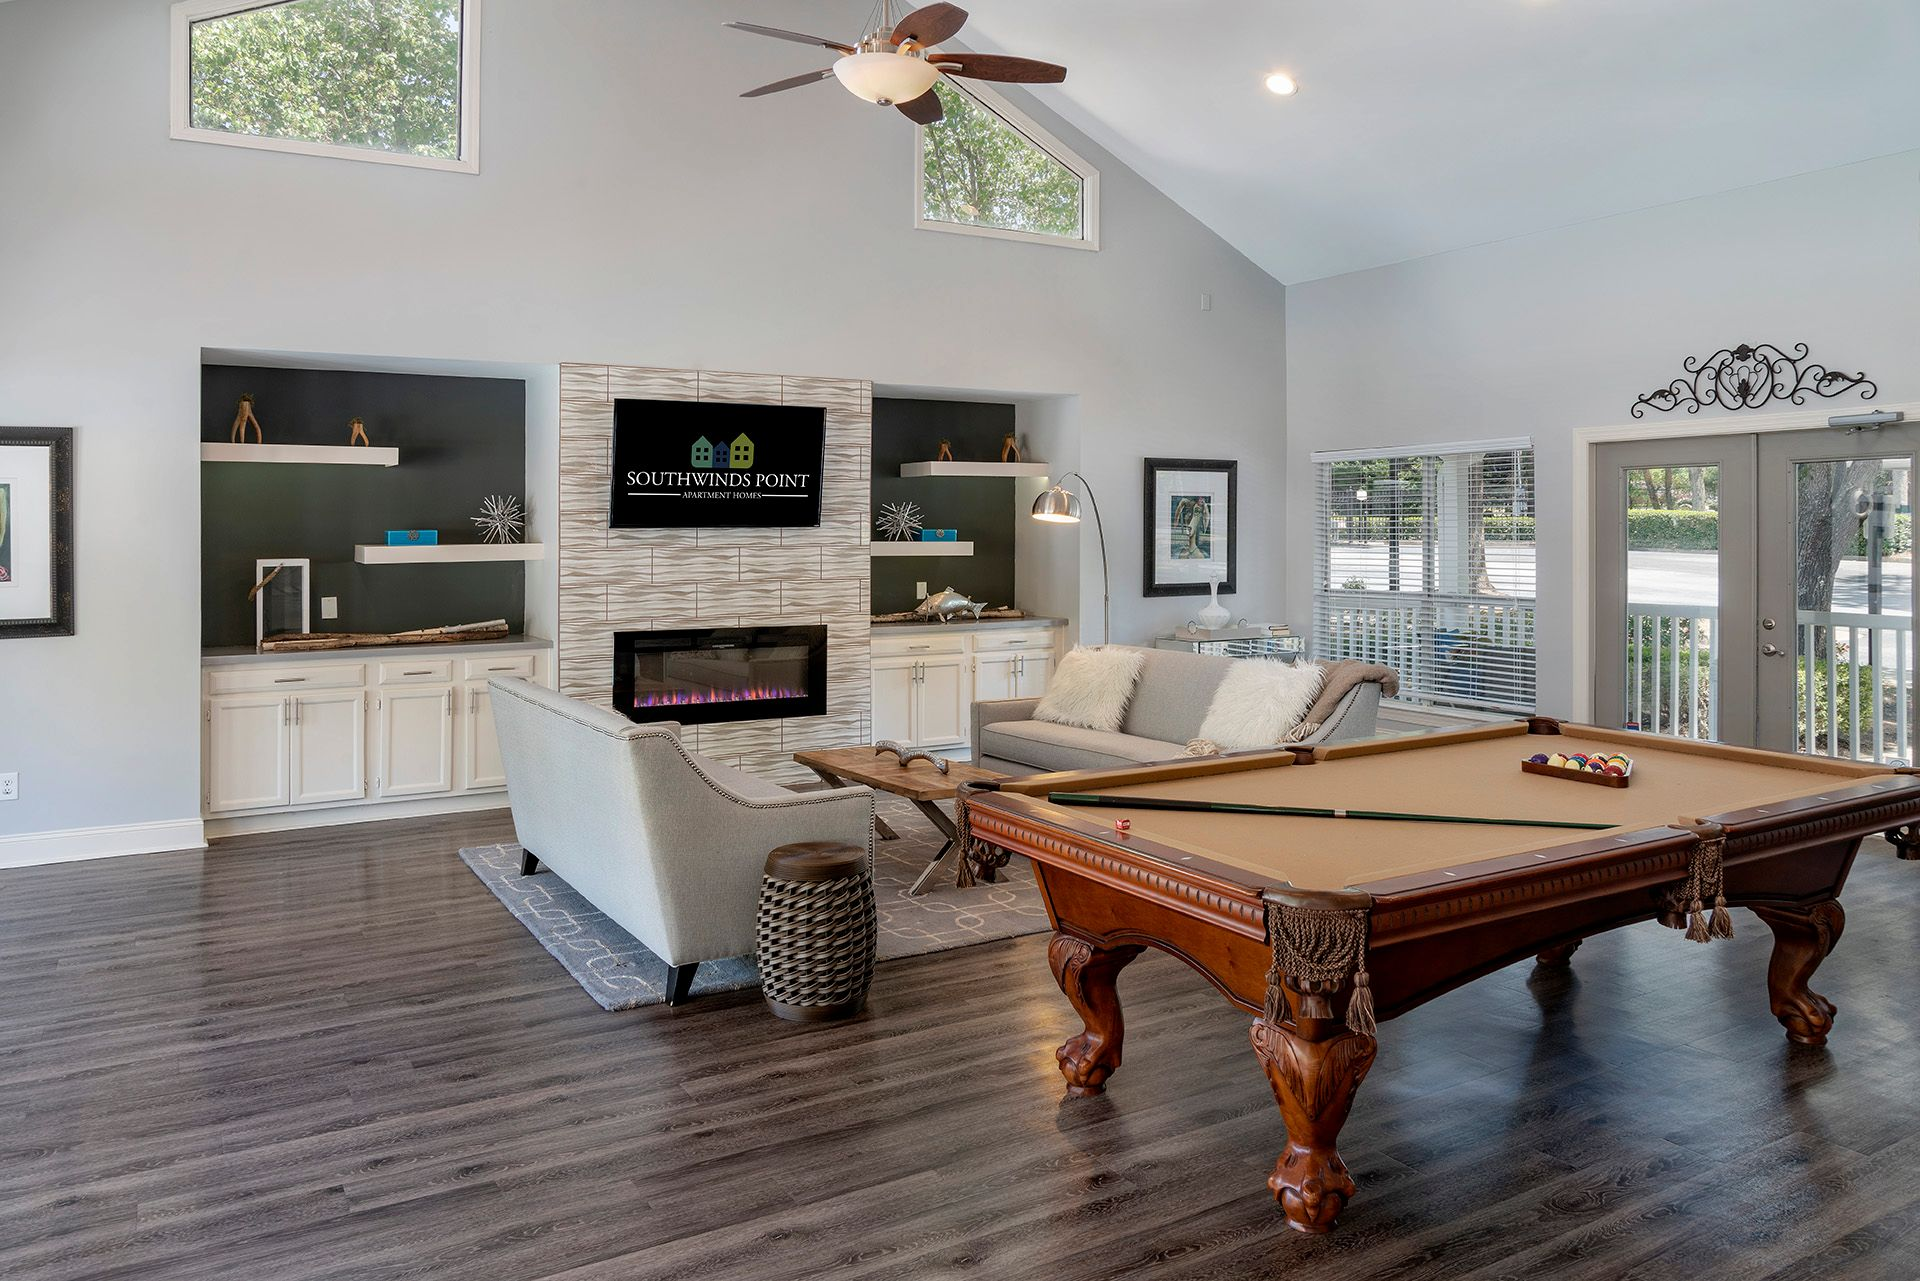 Clubhouse with pool table and couches